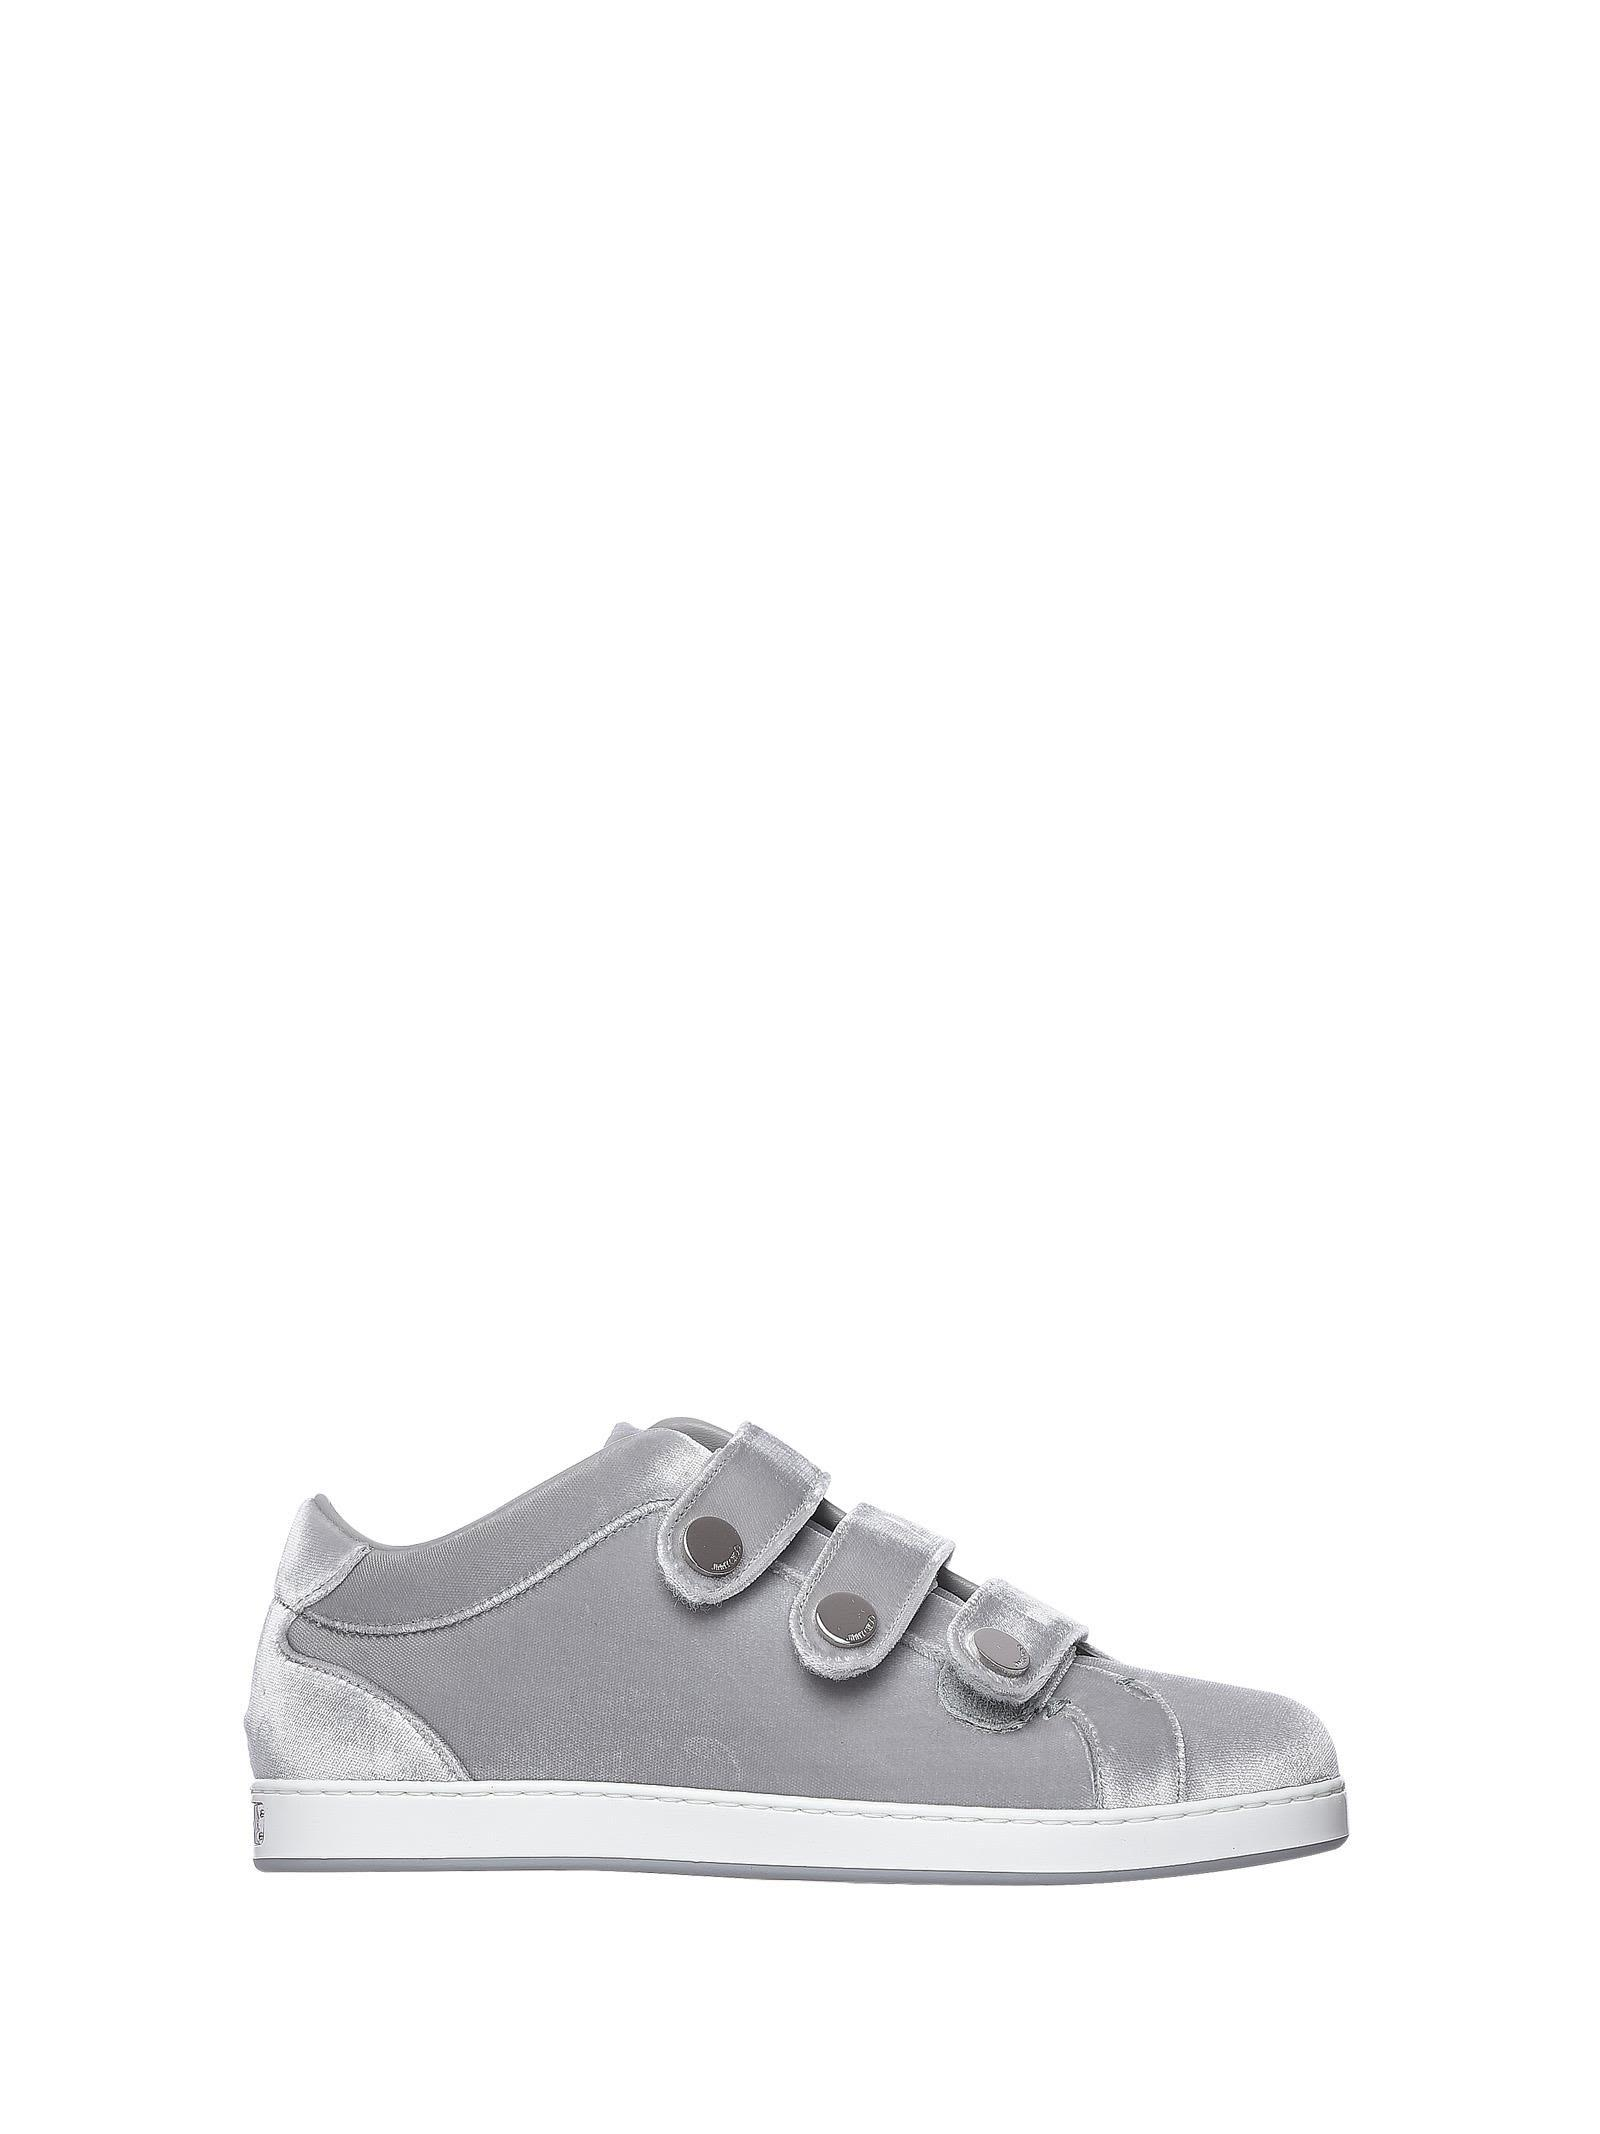 Jimmy Choo Ny Sneakers Trainer Silver In Argento